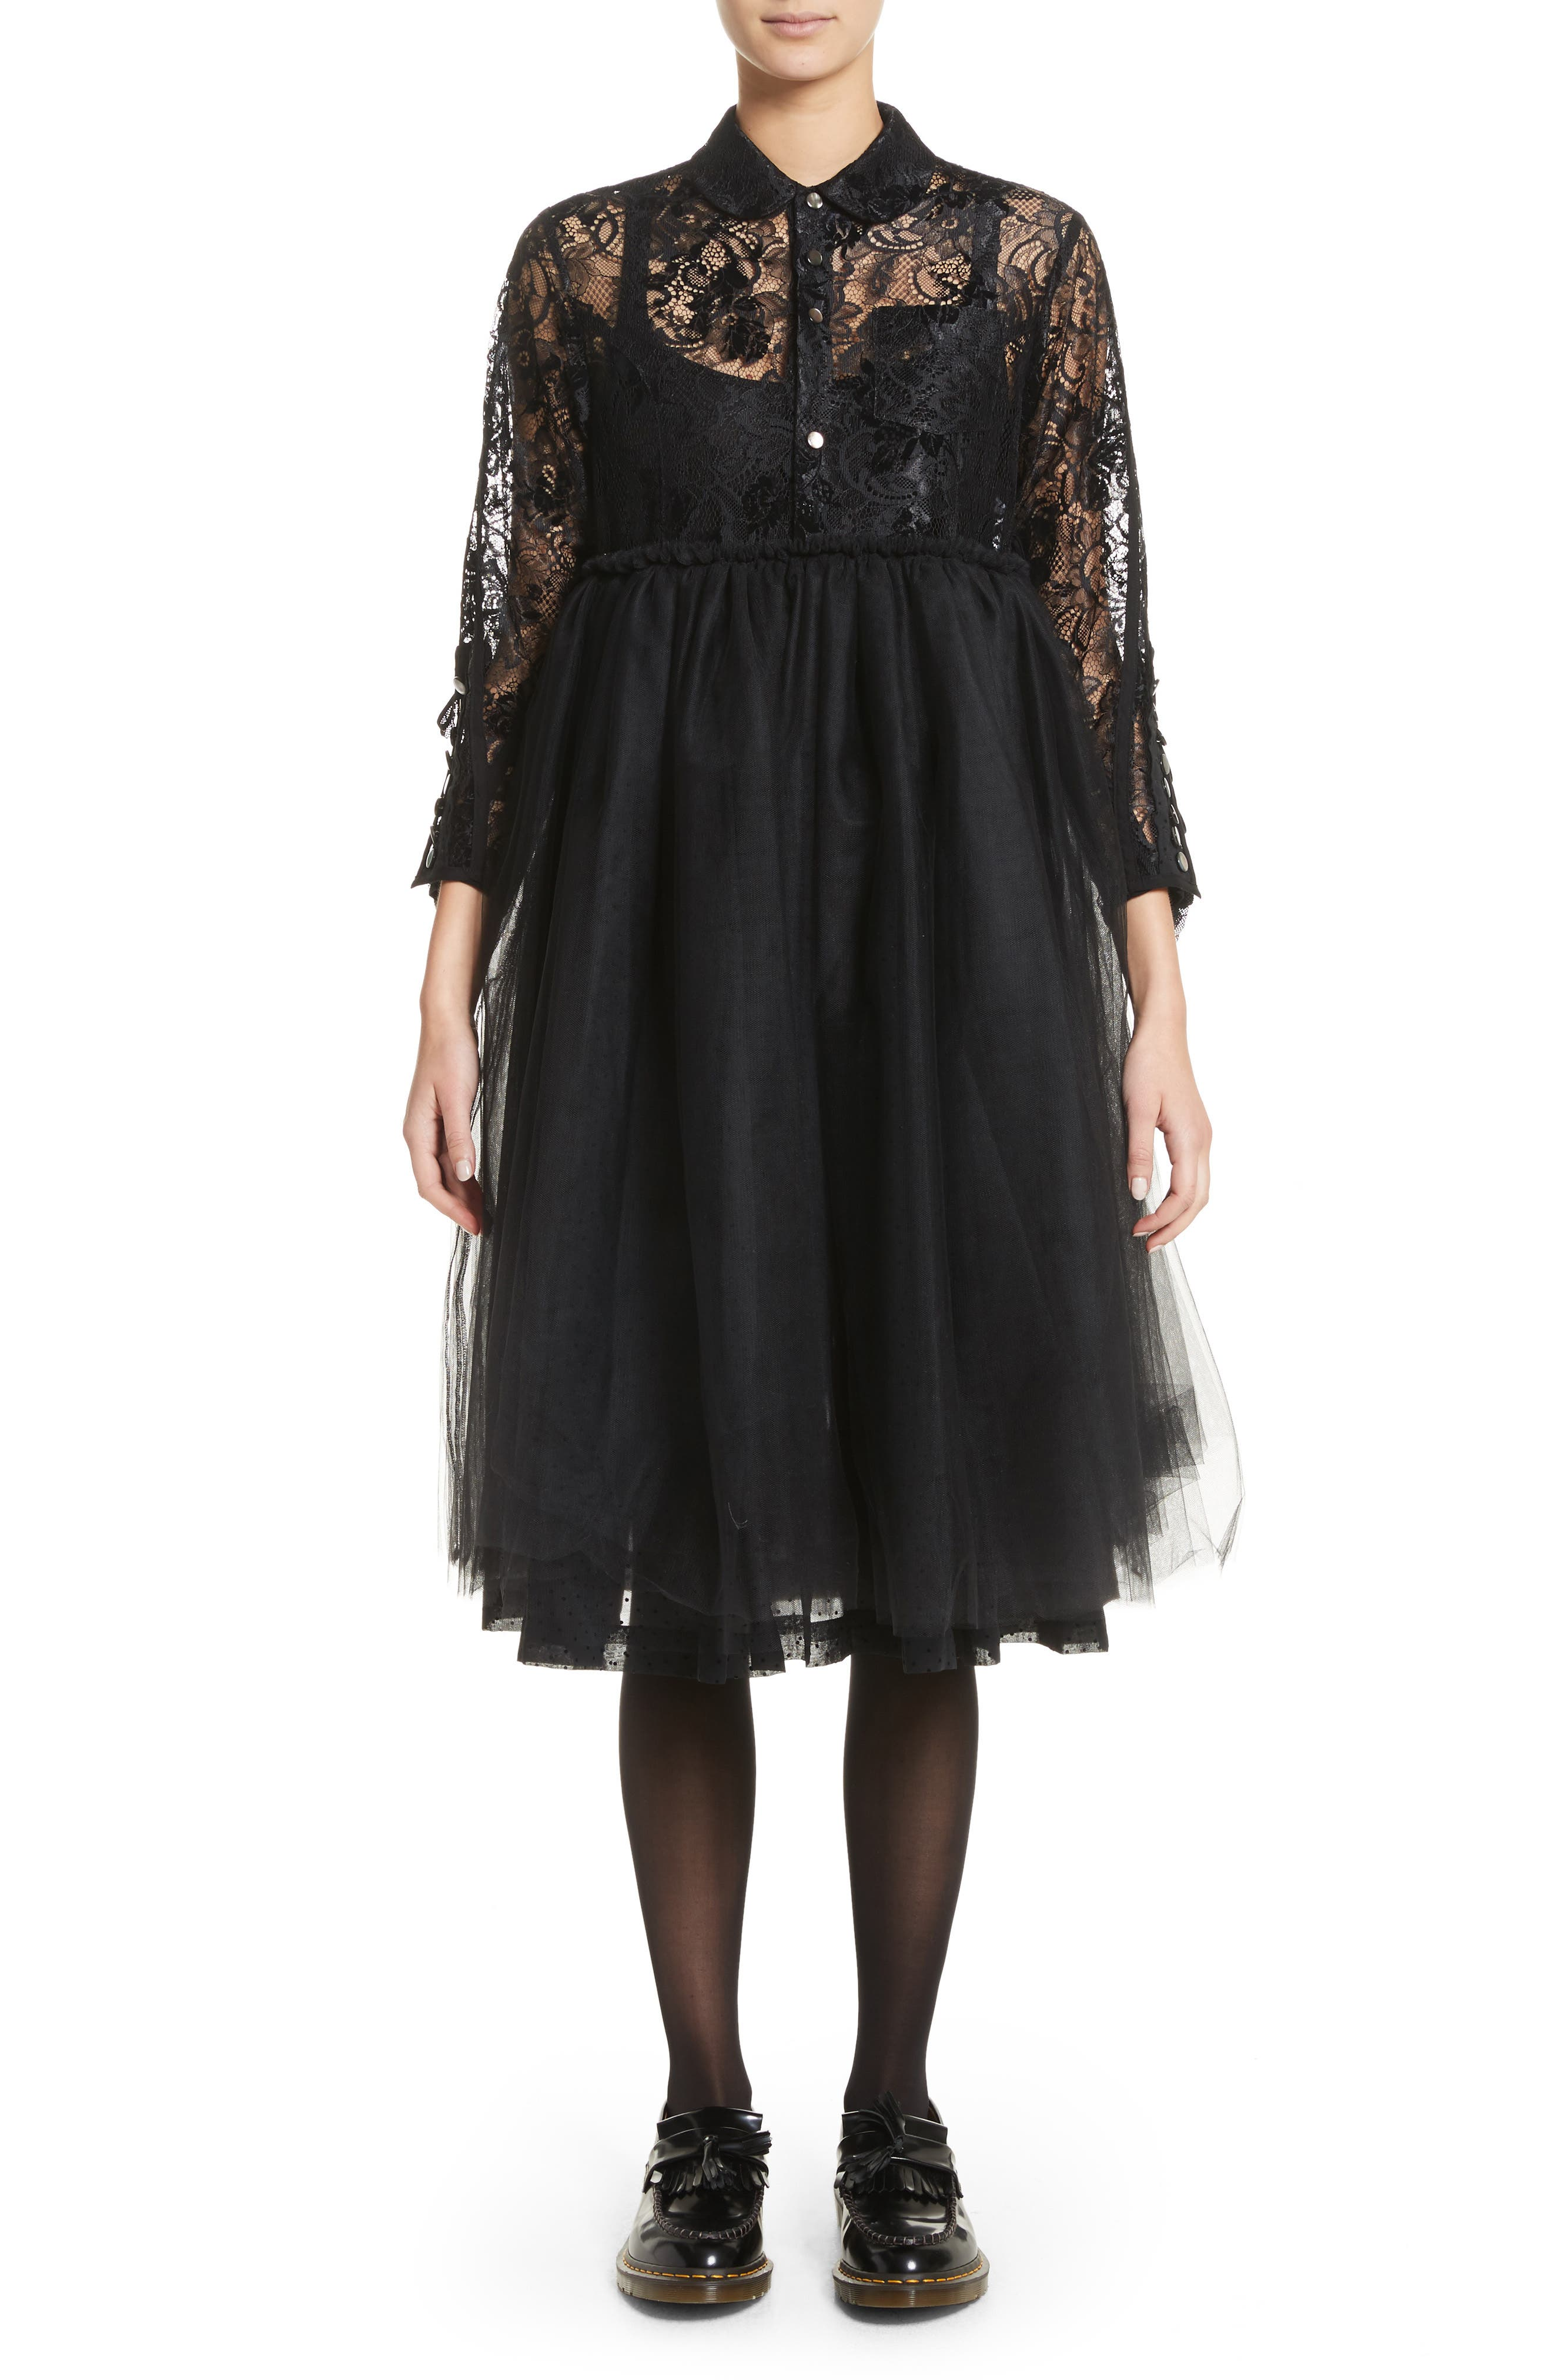 Tricot Comme des Garçons Lace Bodice Shirtdress with Tulle Skirt